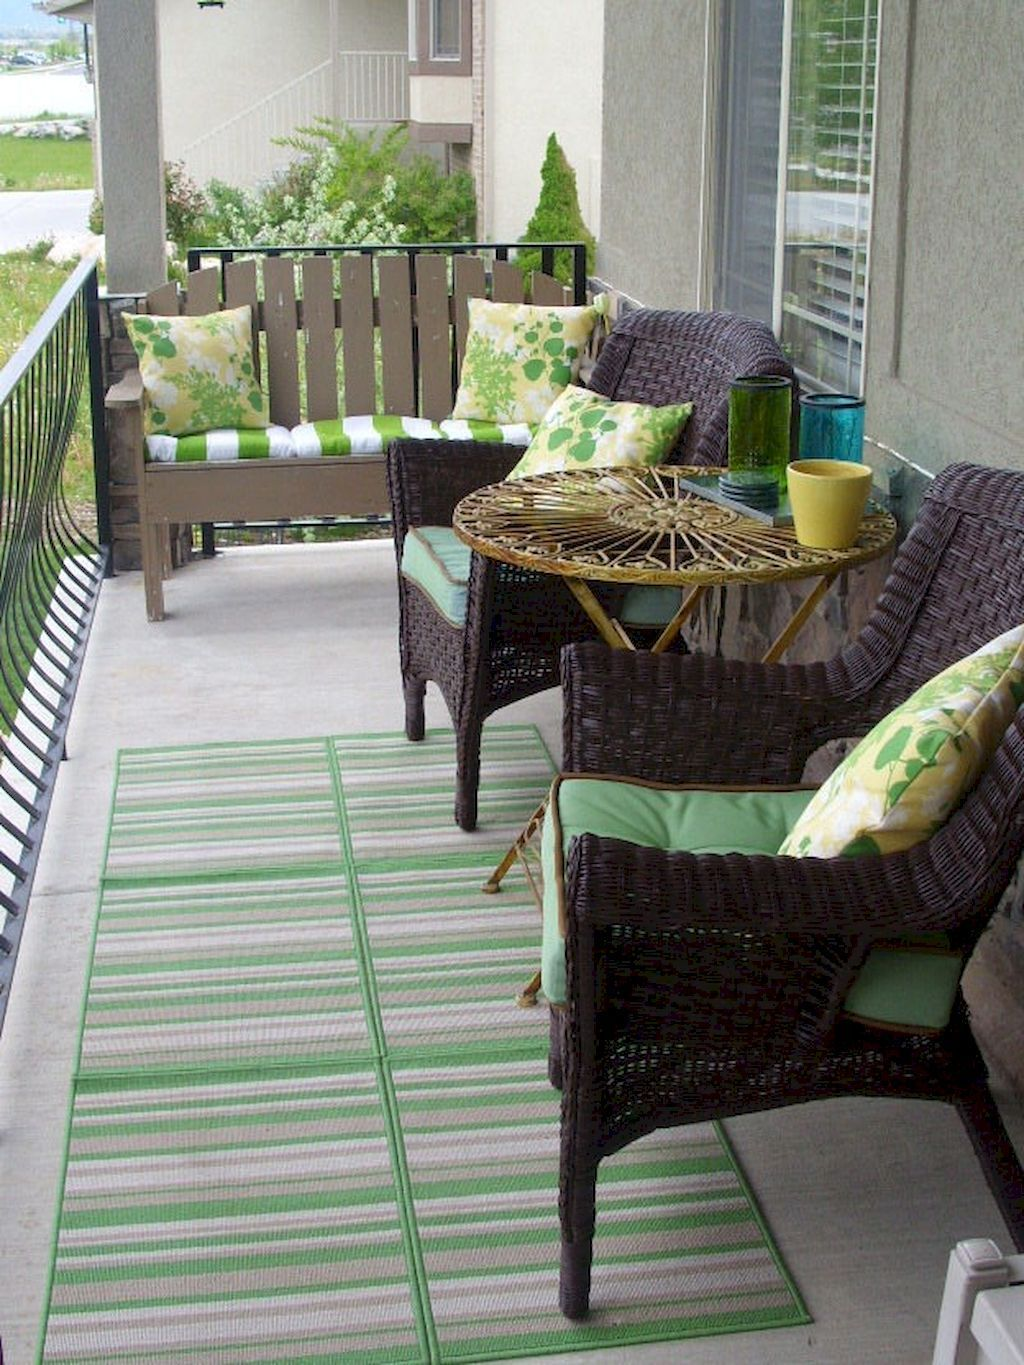 Backyard ideas a super awesome collection of yard inspirations backyard ideas for small yards layout pin suggestion shared on for more incredible ideas